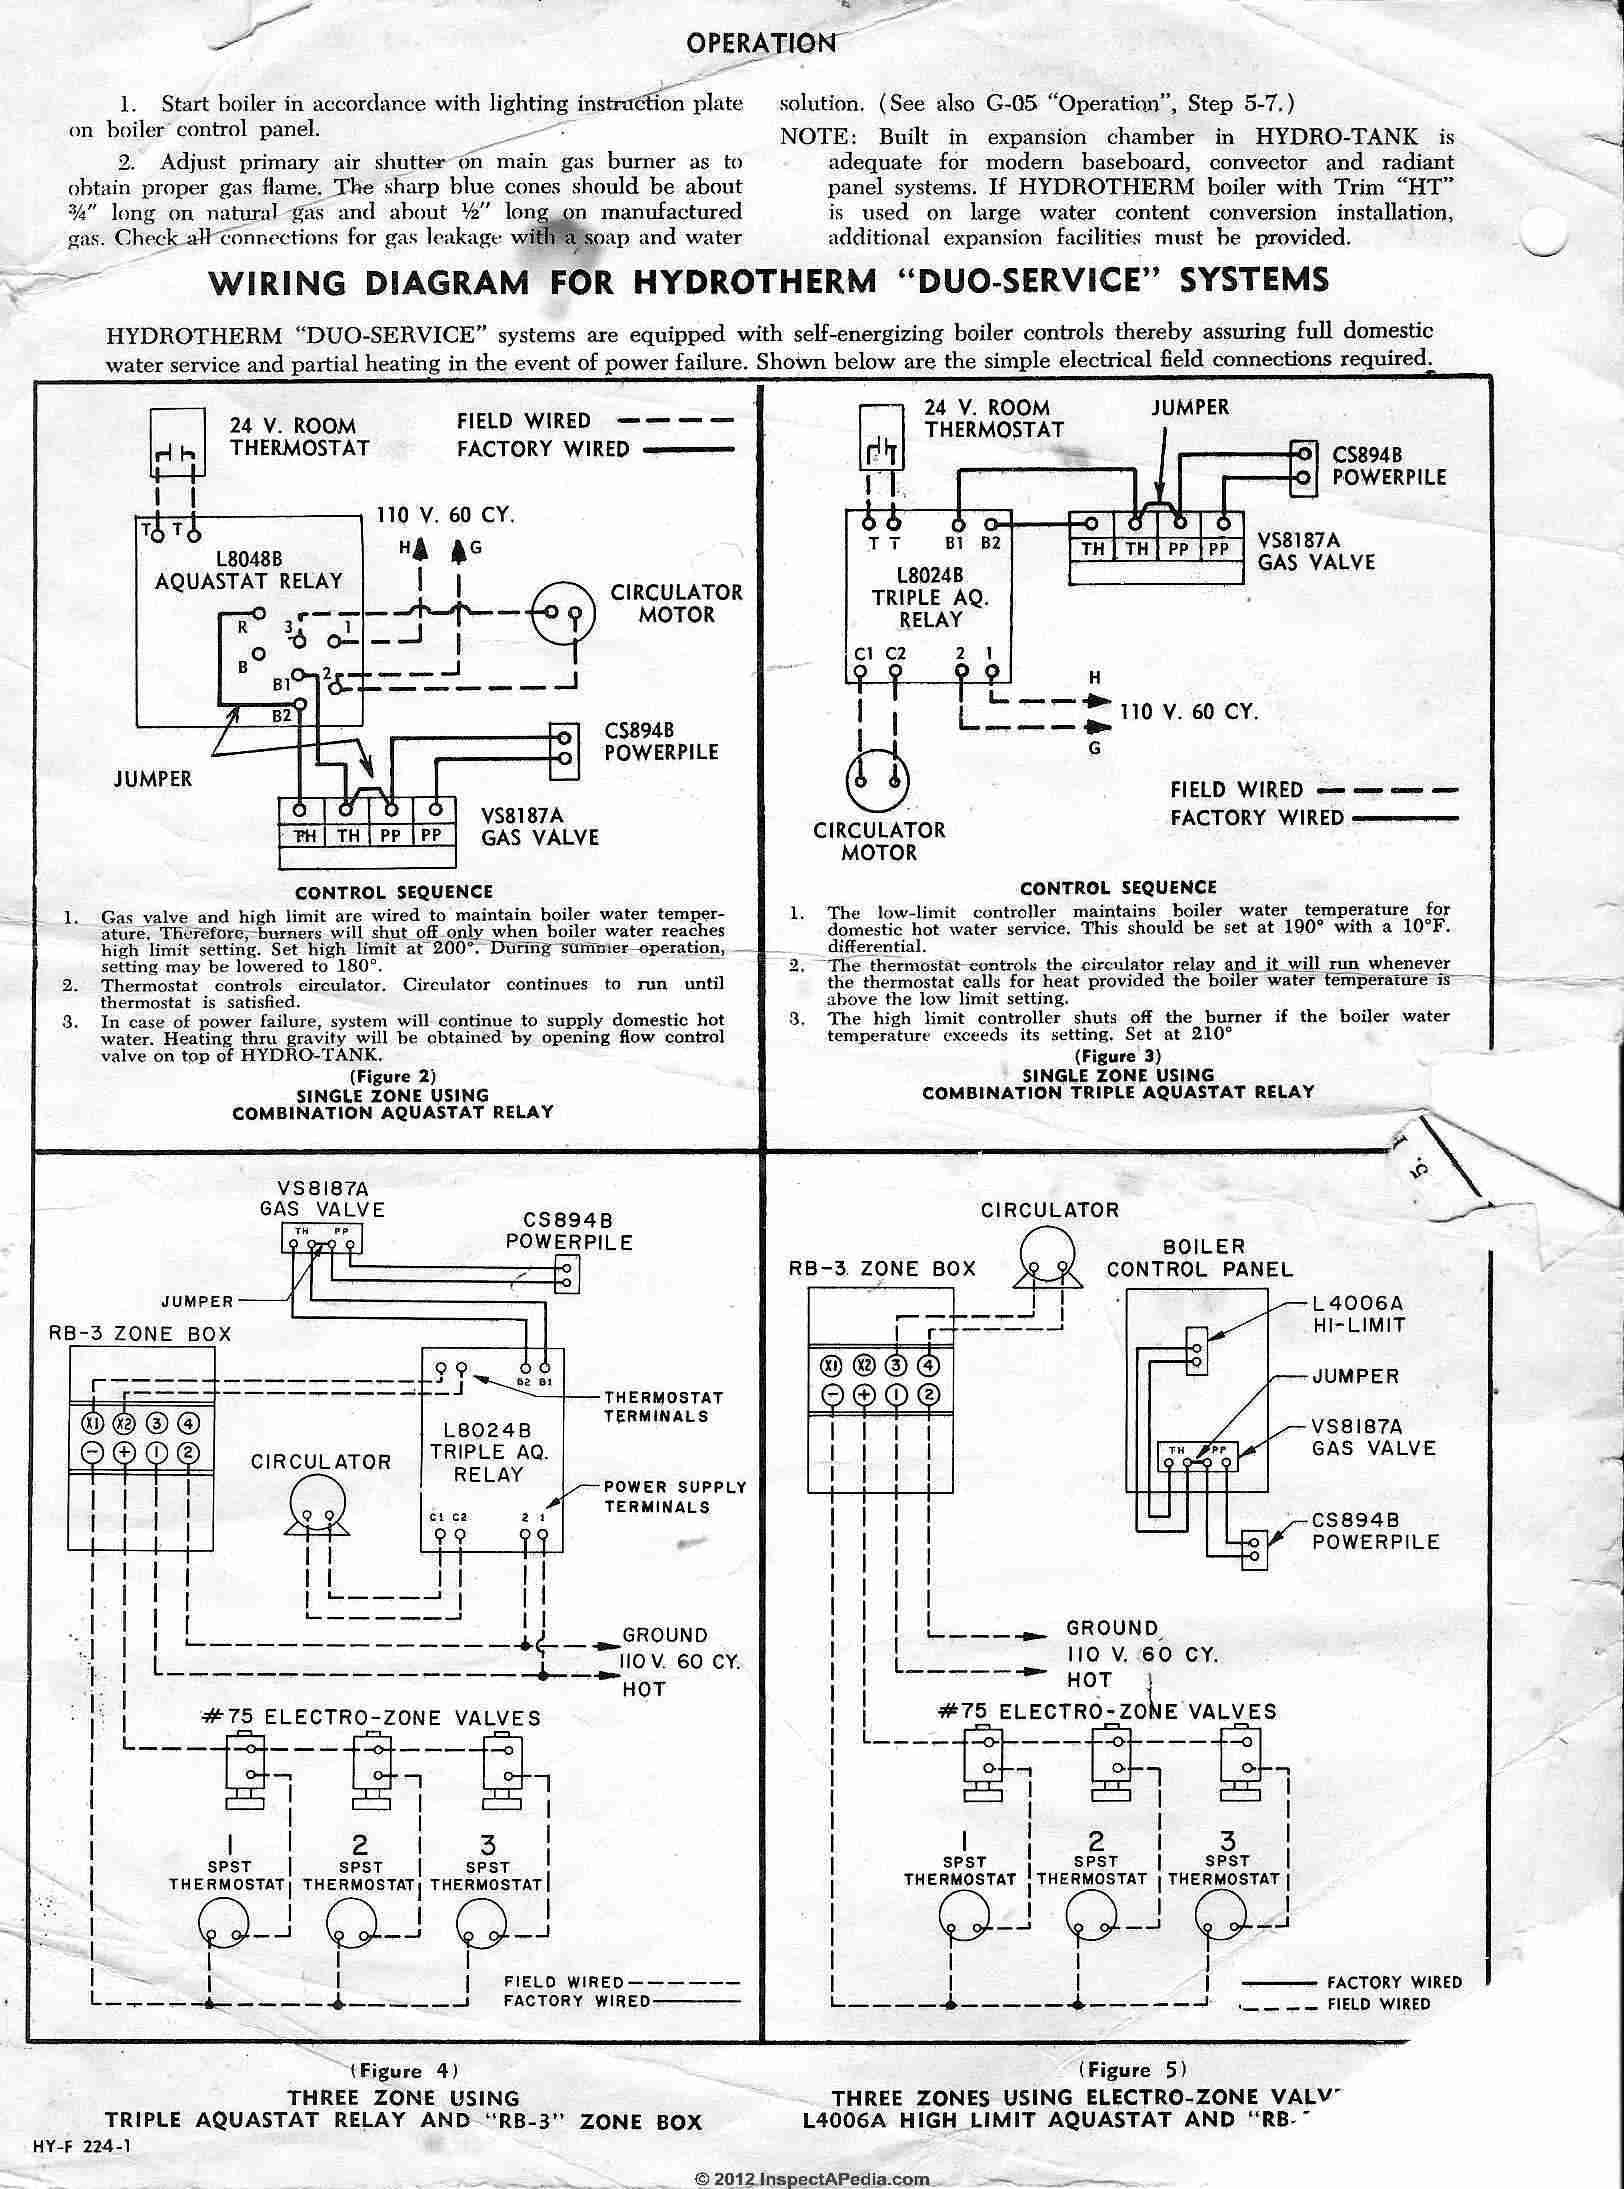 L8024B_Aquastat_0422_DJFcs honeywell l7224 wiring diagram honeywell l7224u aquastat wiring honeywell pressure switch wiring diagram at creativeand.co